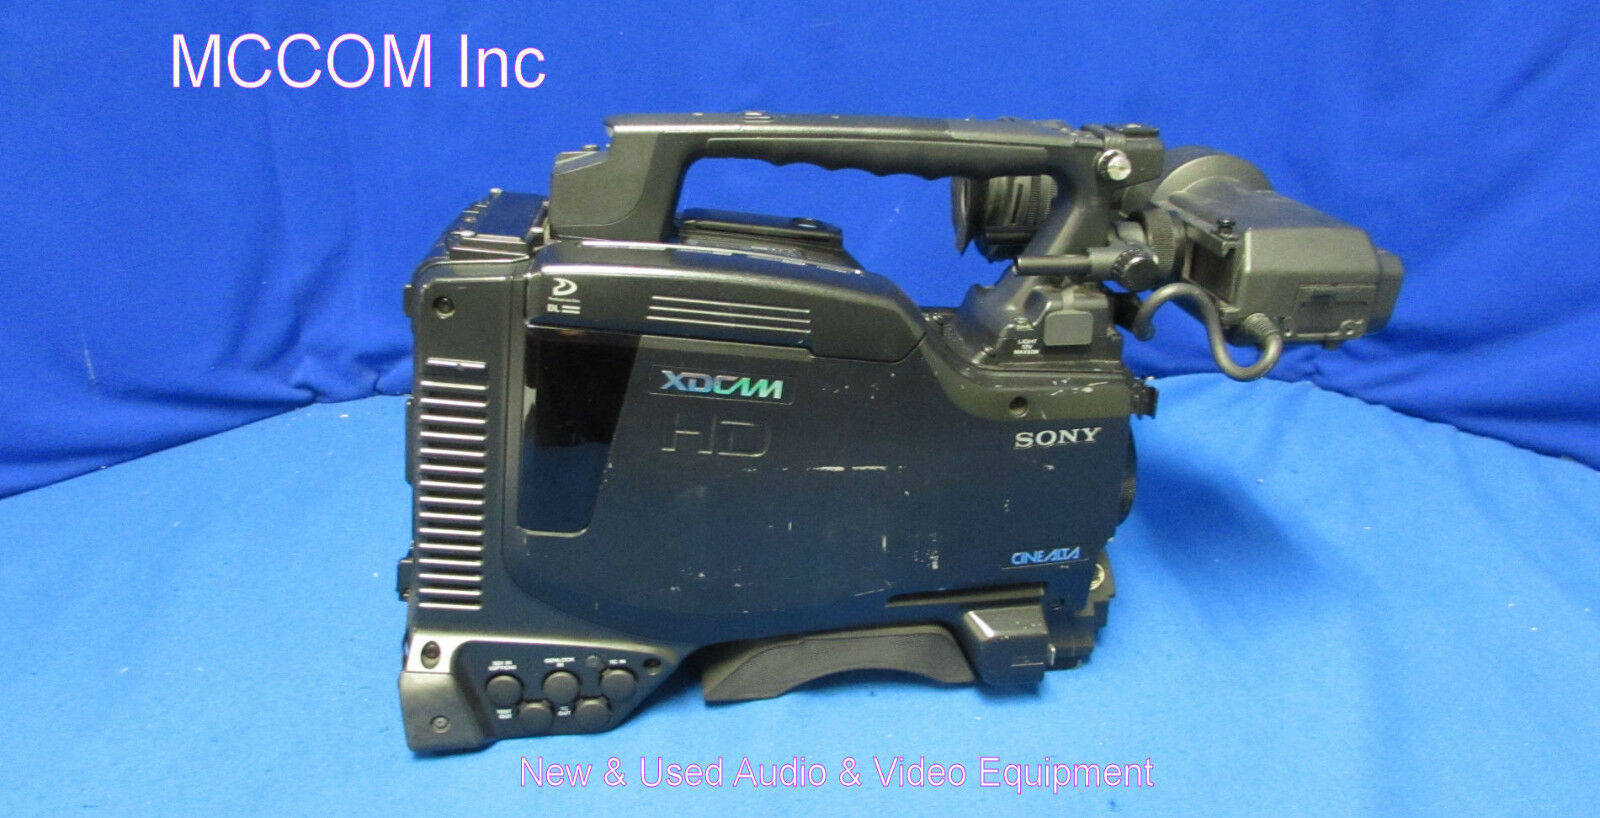 Sony PDW-F800 HD XDCAM Camcorder w/ 624 laser hrs, HDVF-200 VF, Macie Serviced